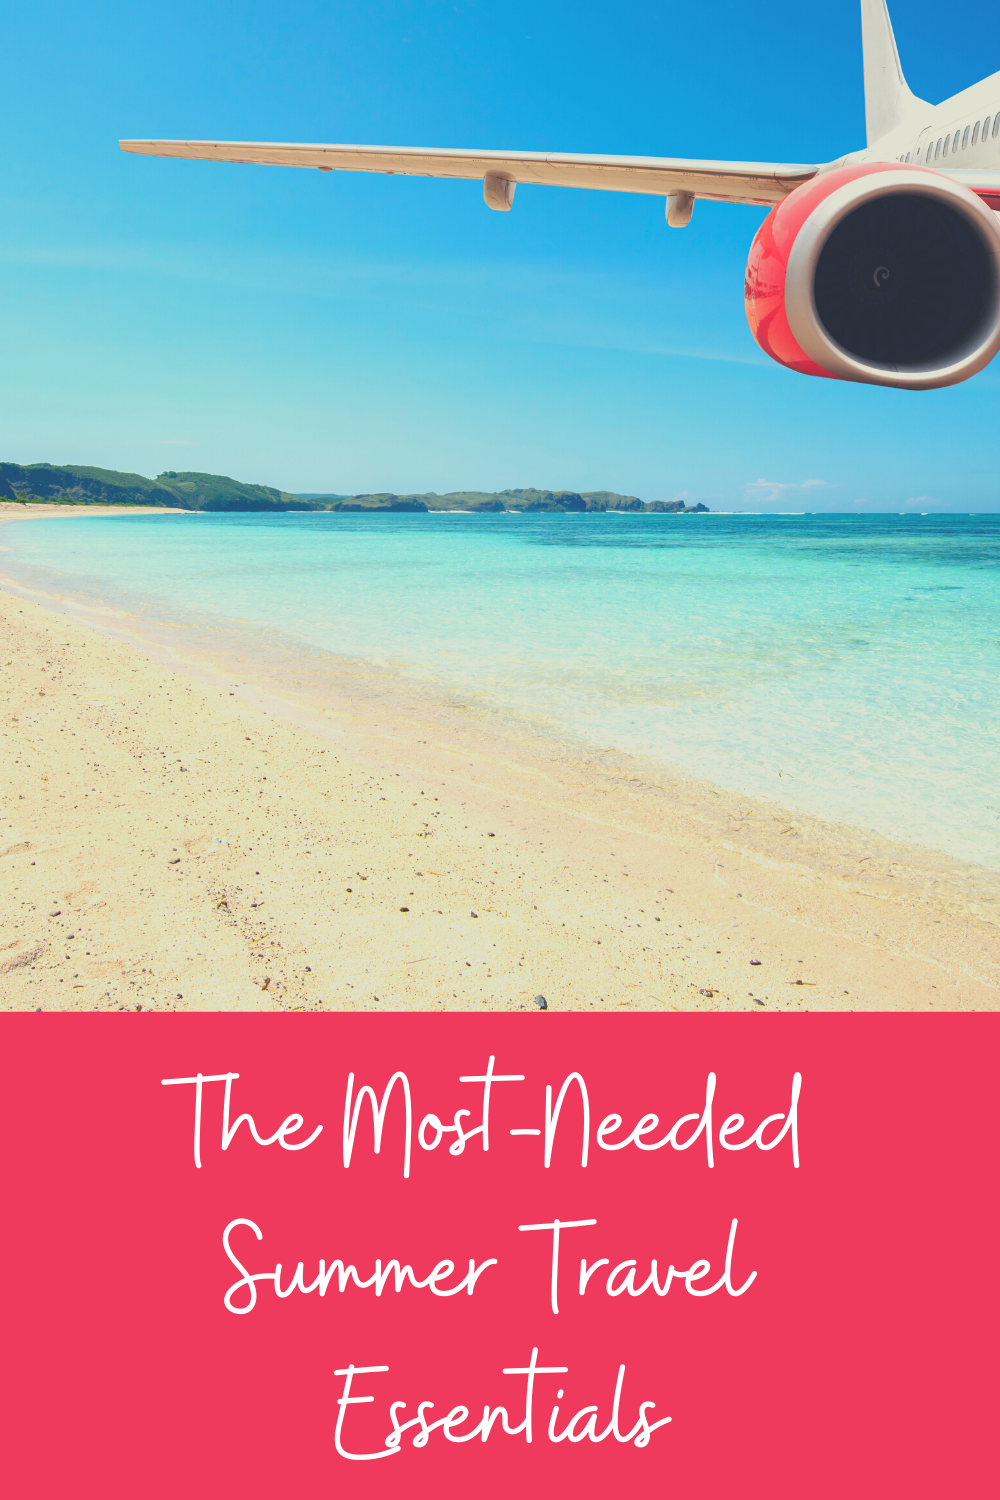 The Most Needed Summer Travel Essentials